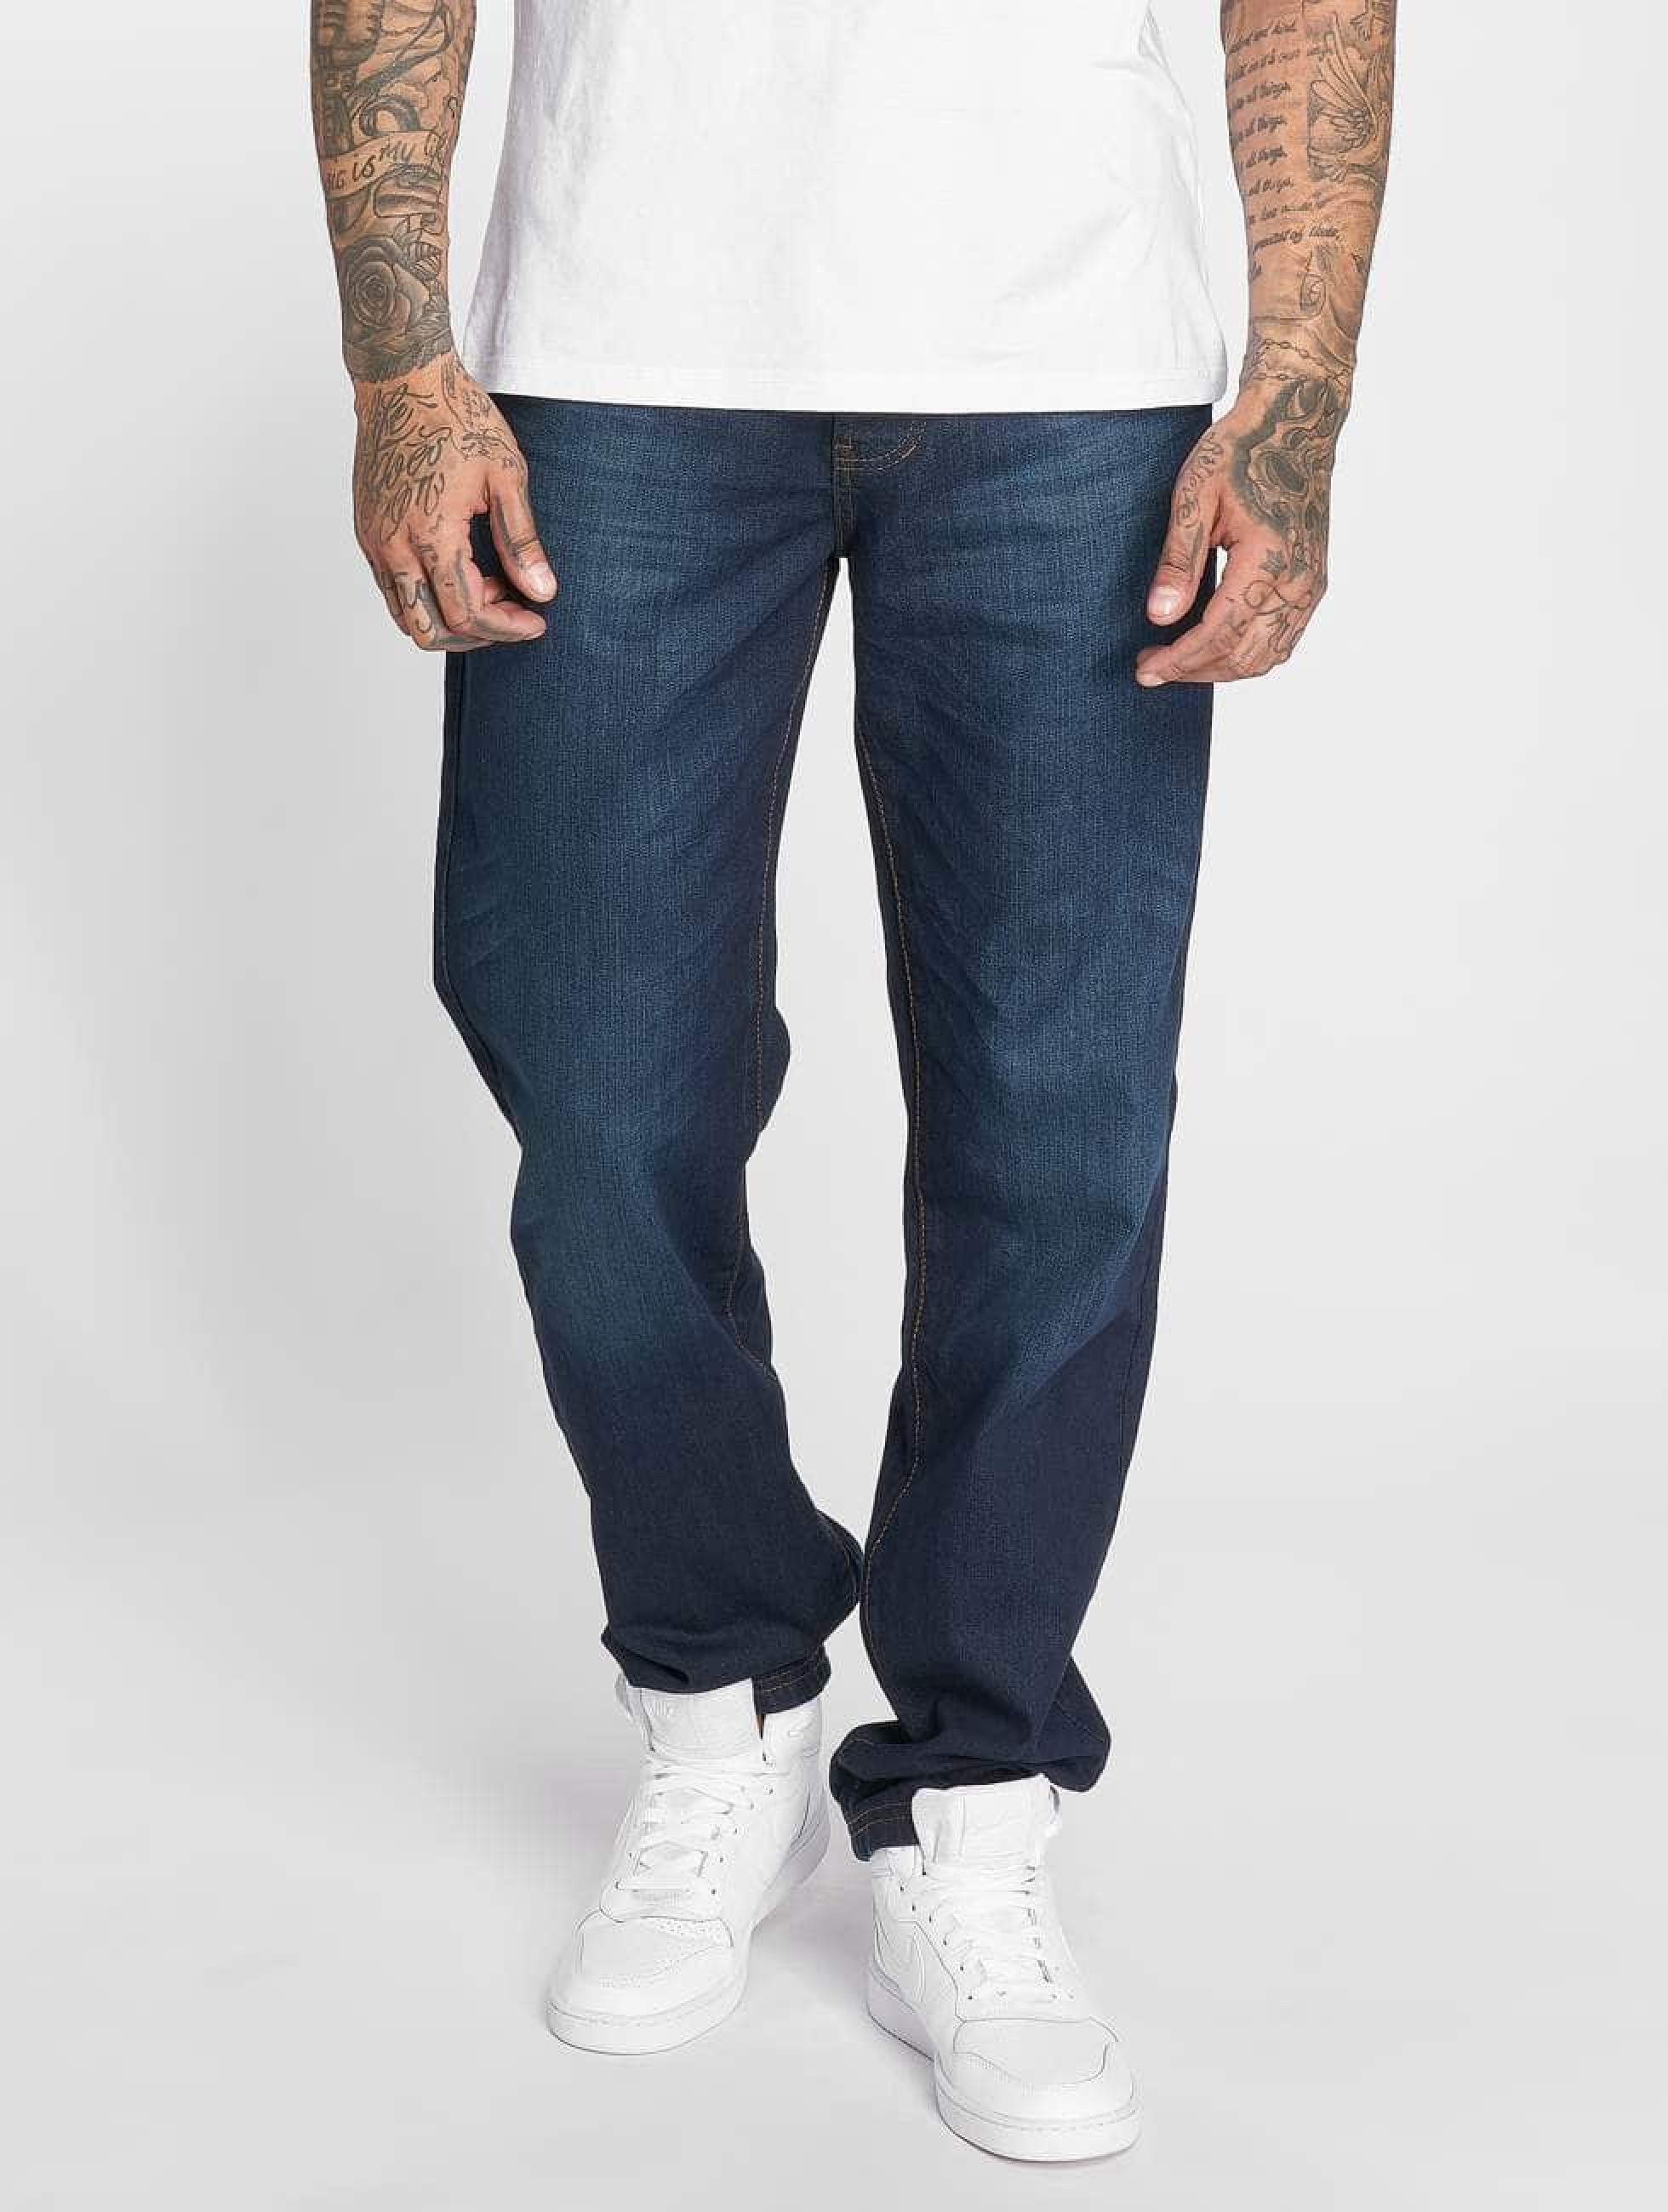 Thug Life / Carrot Fit Jeans B . Denim in blue W 30 L 32